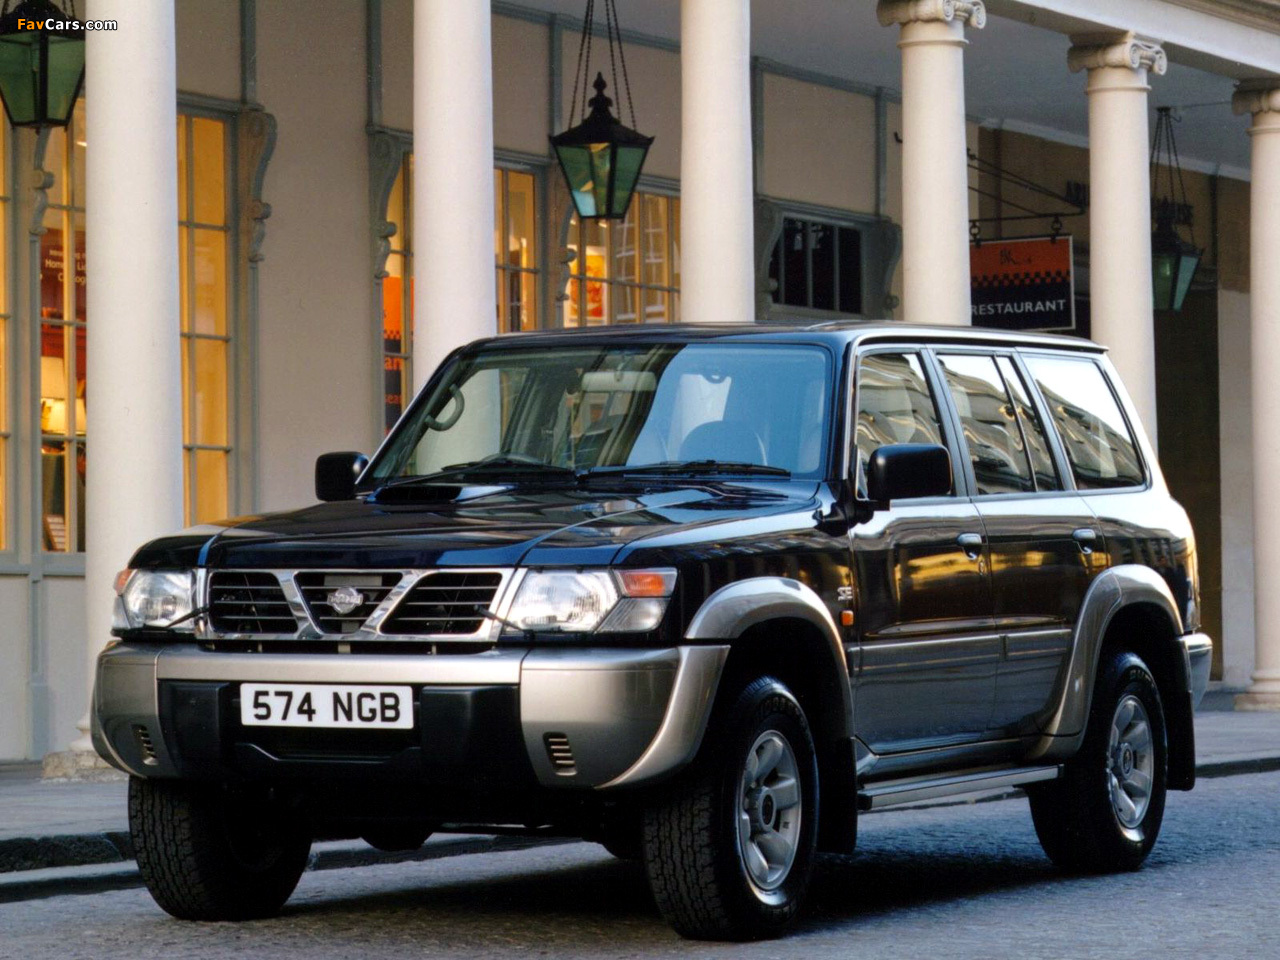 1997 nissan patrol gr ii y61 pictures information and specs auto. Black Bedroom Furniture Sets. Home Design Ideas